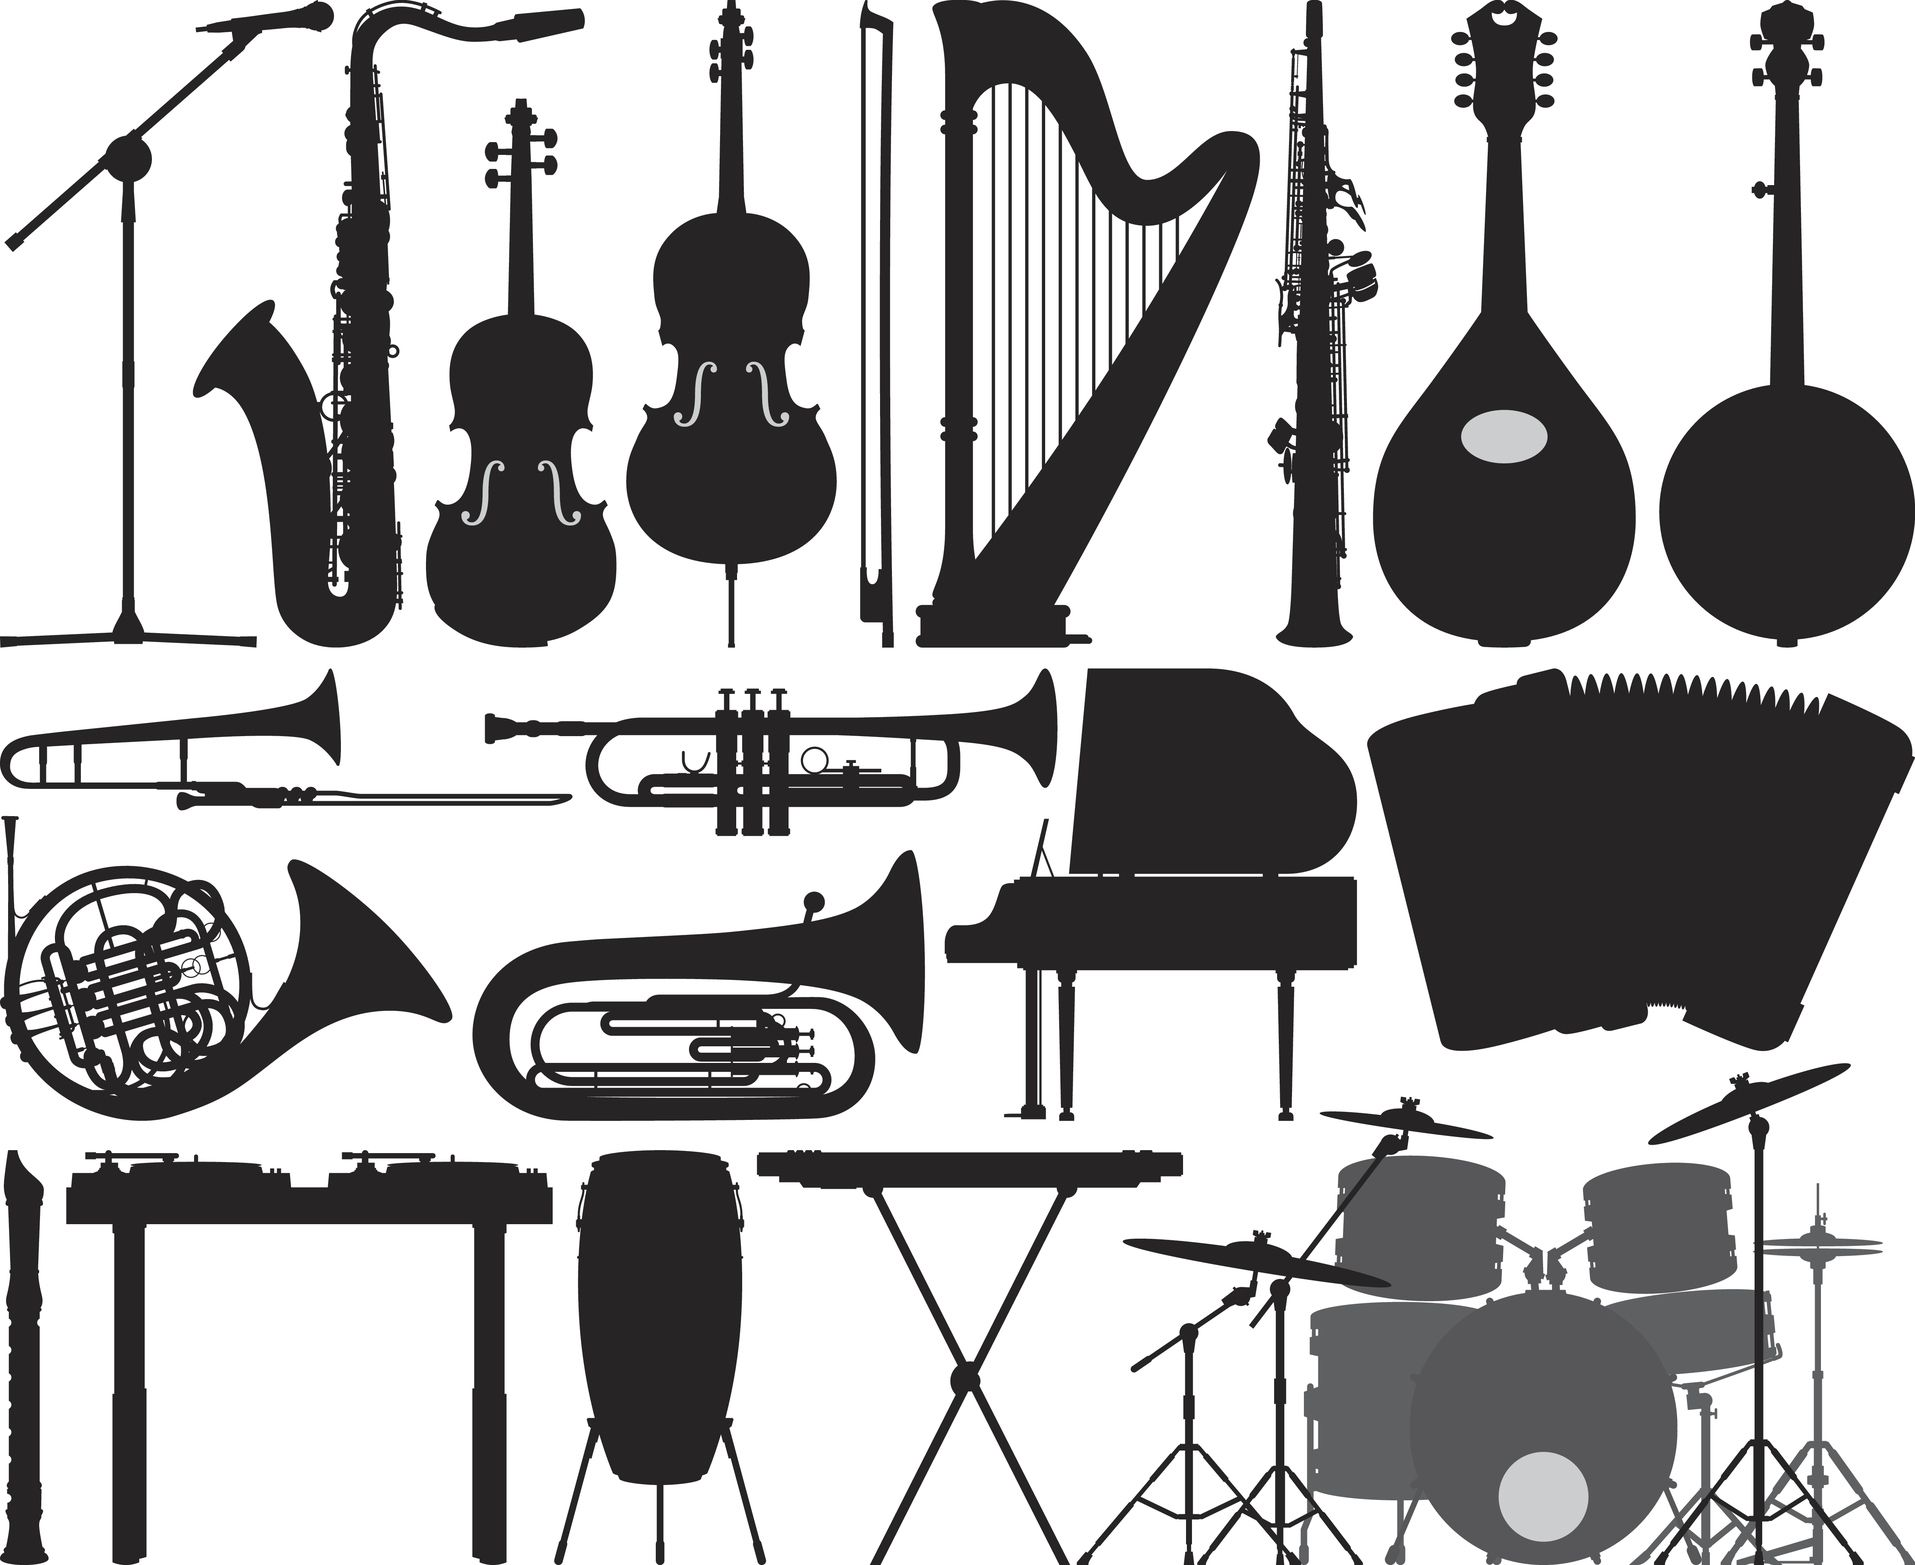 Musical Instruments Word Search Crossword Puzzle And More